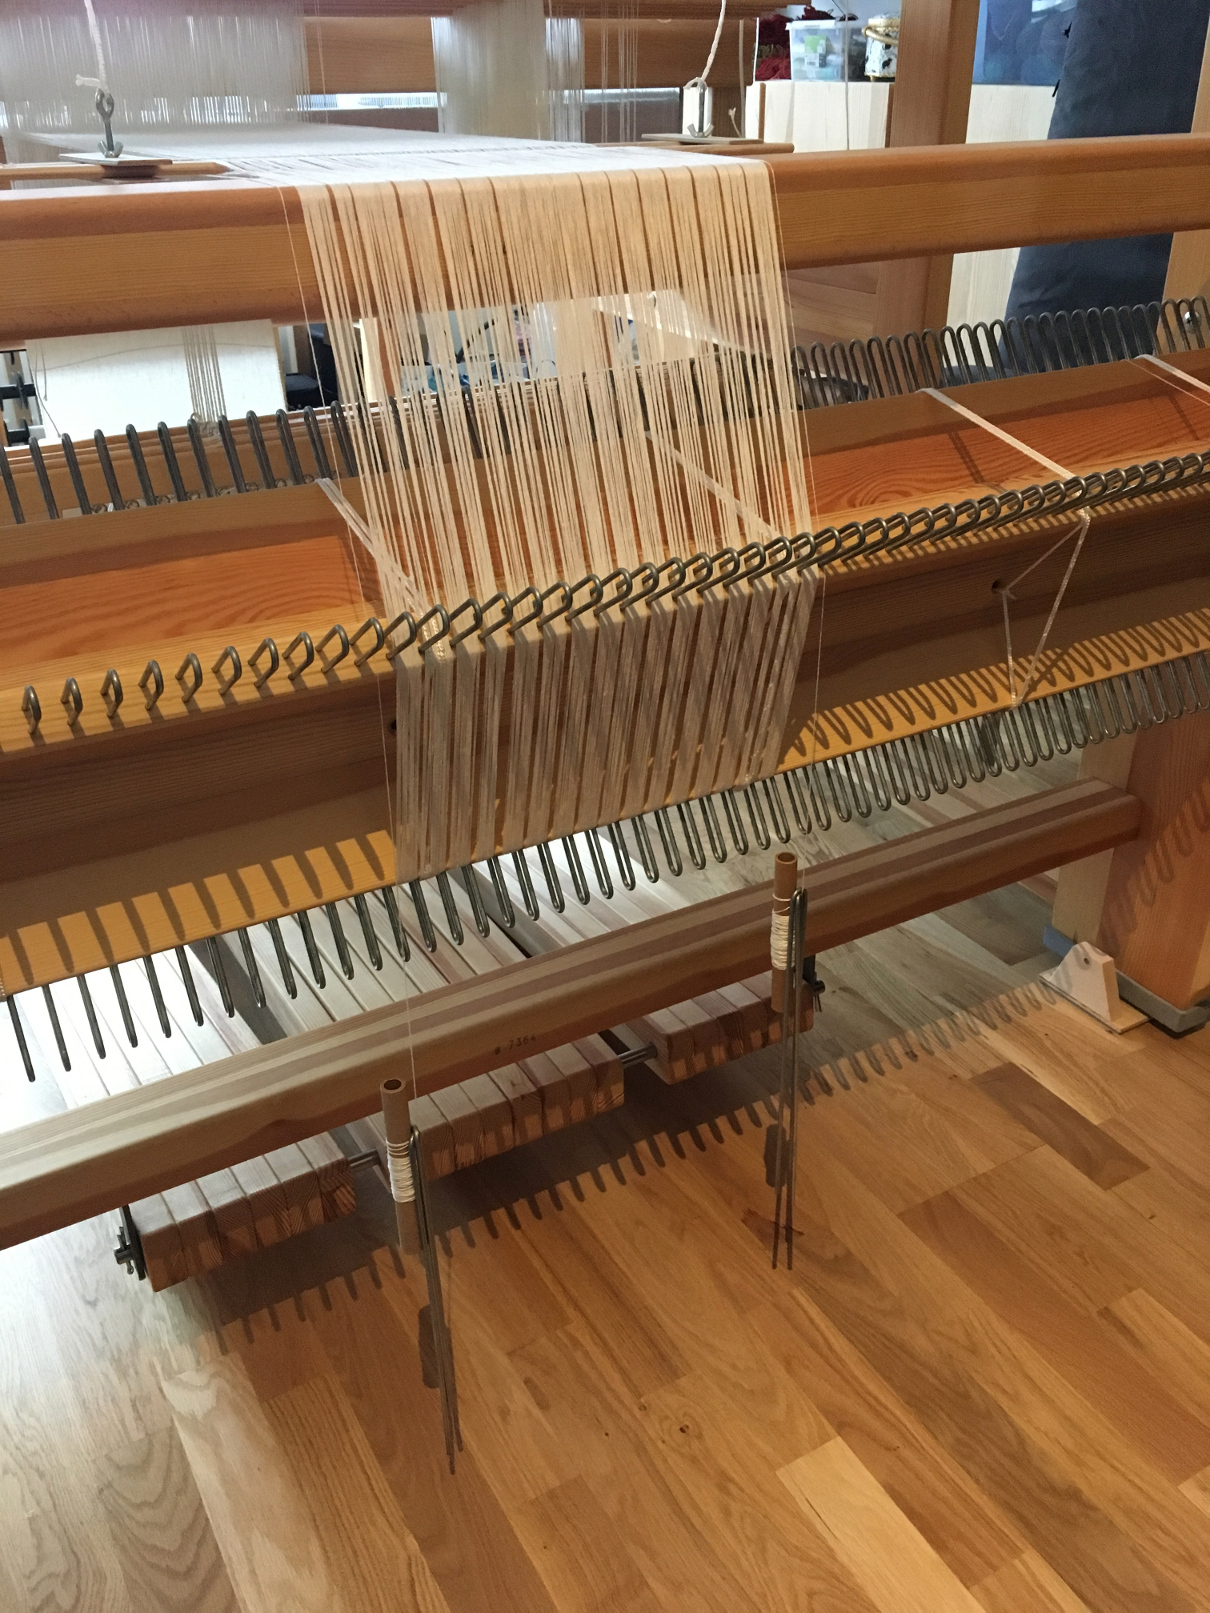 Photograph of the back of a wooden loom, showing the white warp wound on the beam and two extra bobbins dangling on the sides, weighted down.